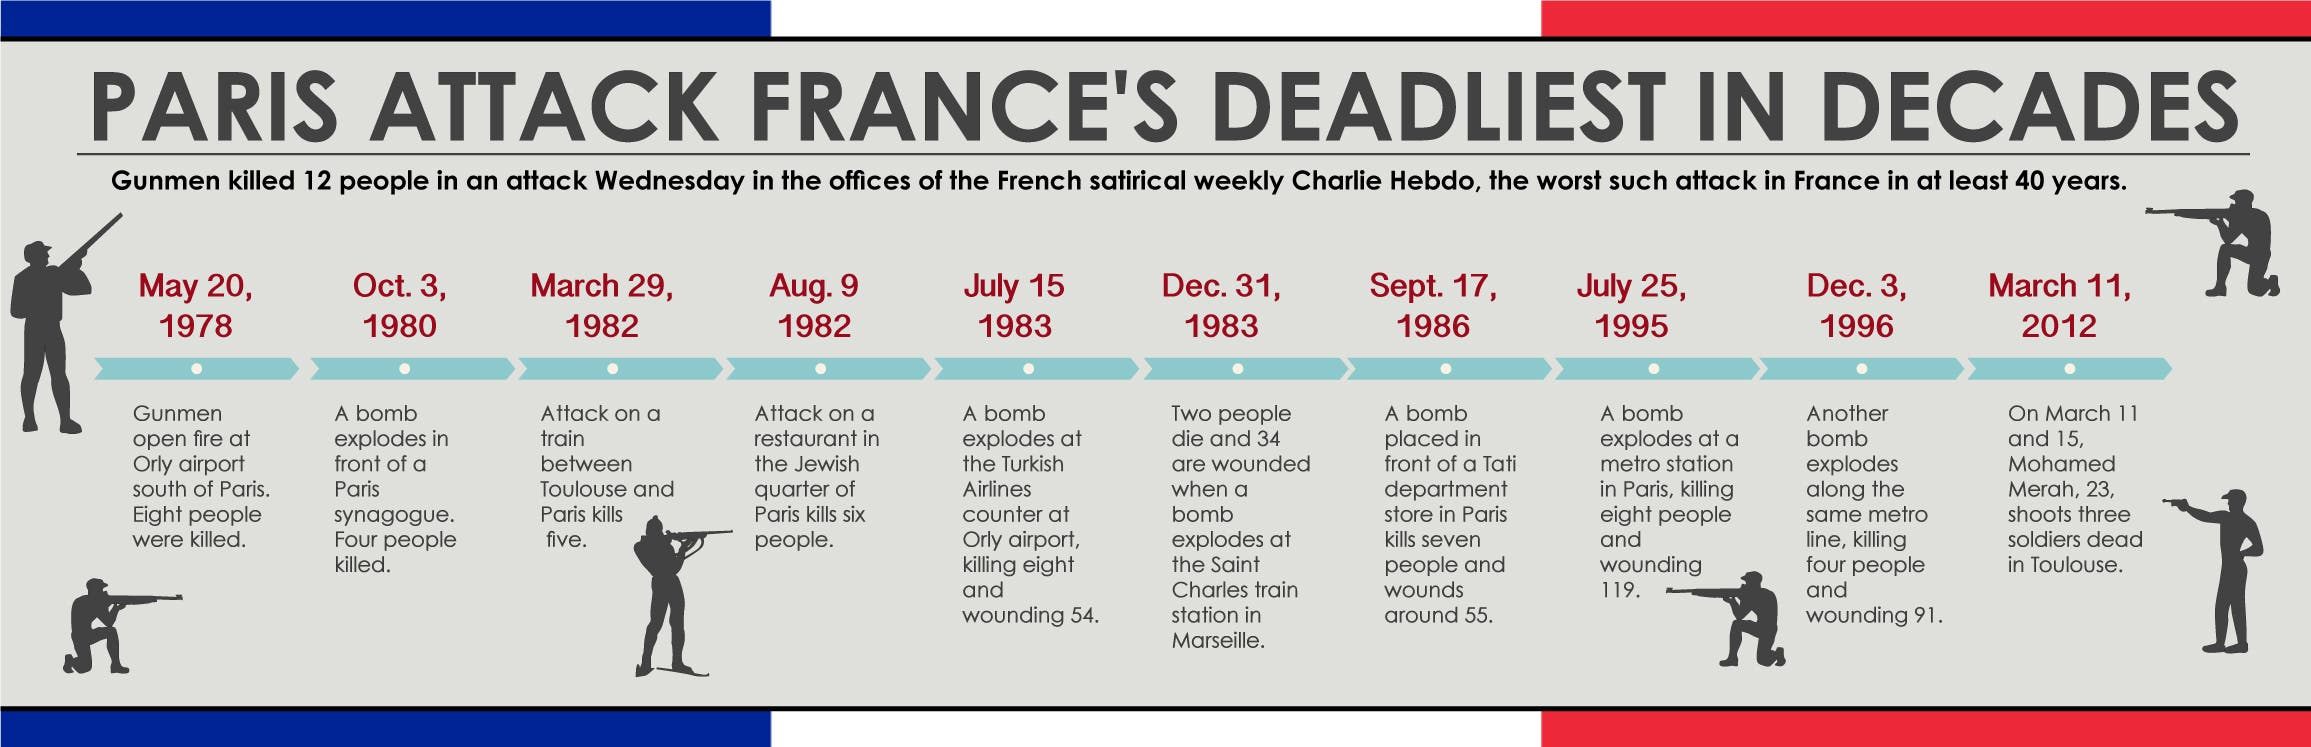 Infographic: Paris attack France's deadliest in decades